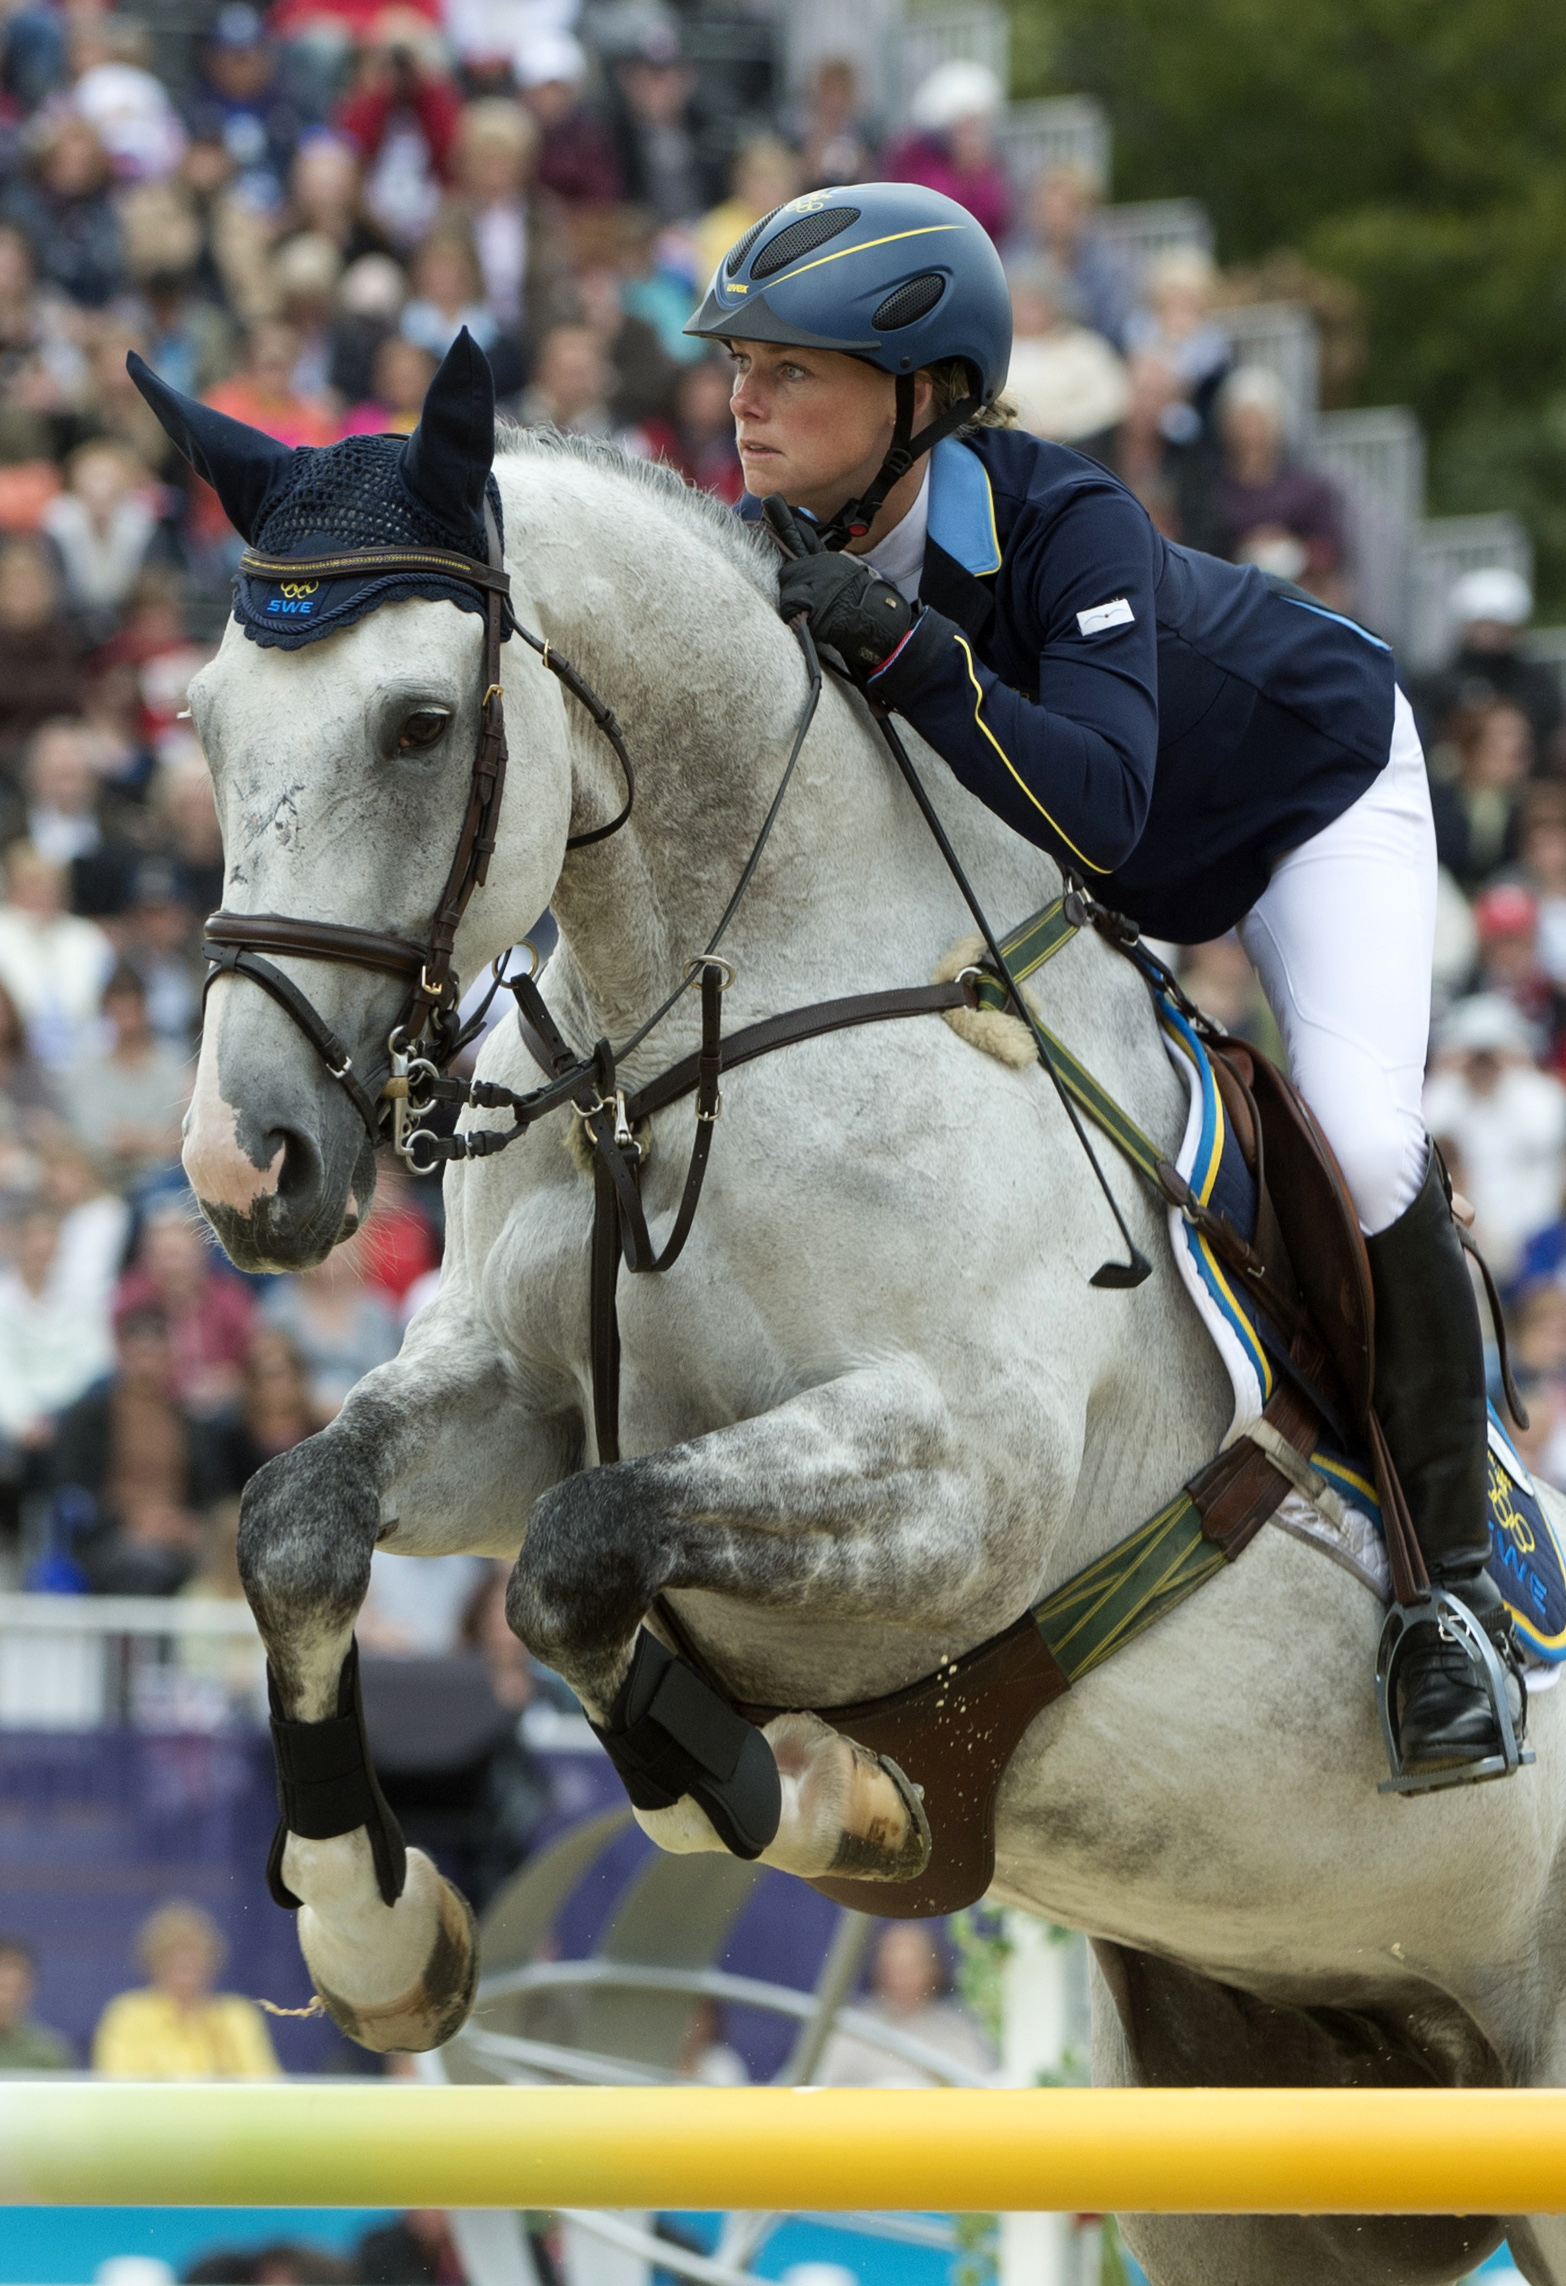 Swedish Warmblood